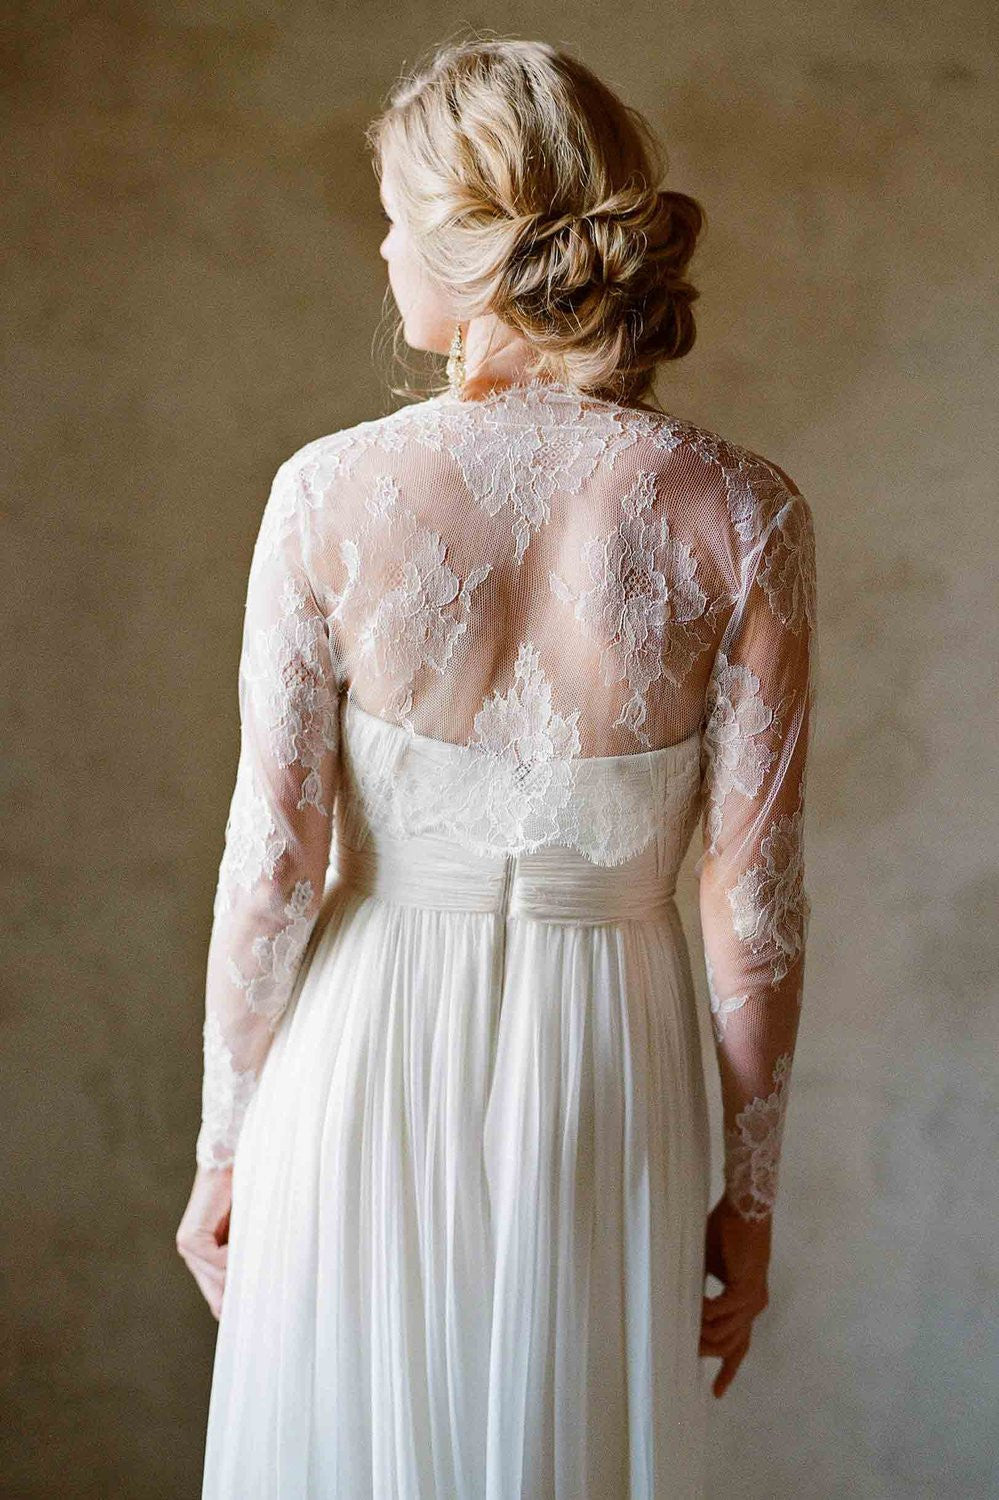 Roseline bridal French lace sheer tulle bolero cover up shrug in ivory - style 210